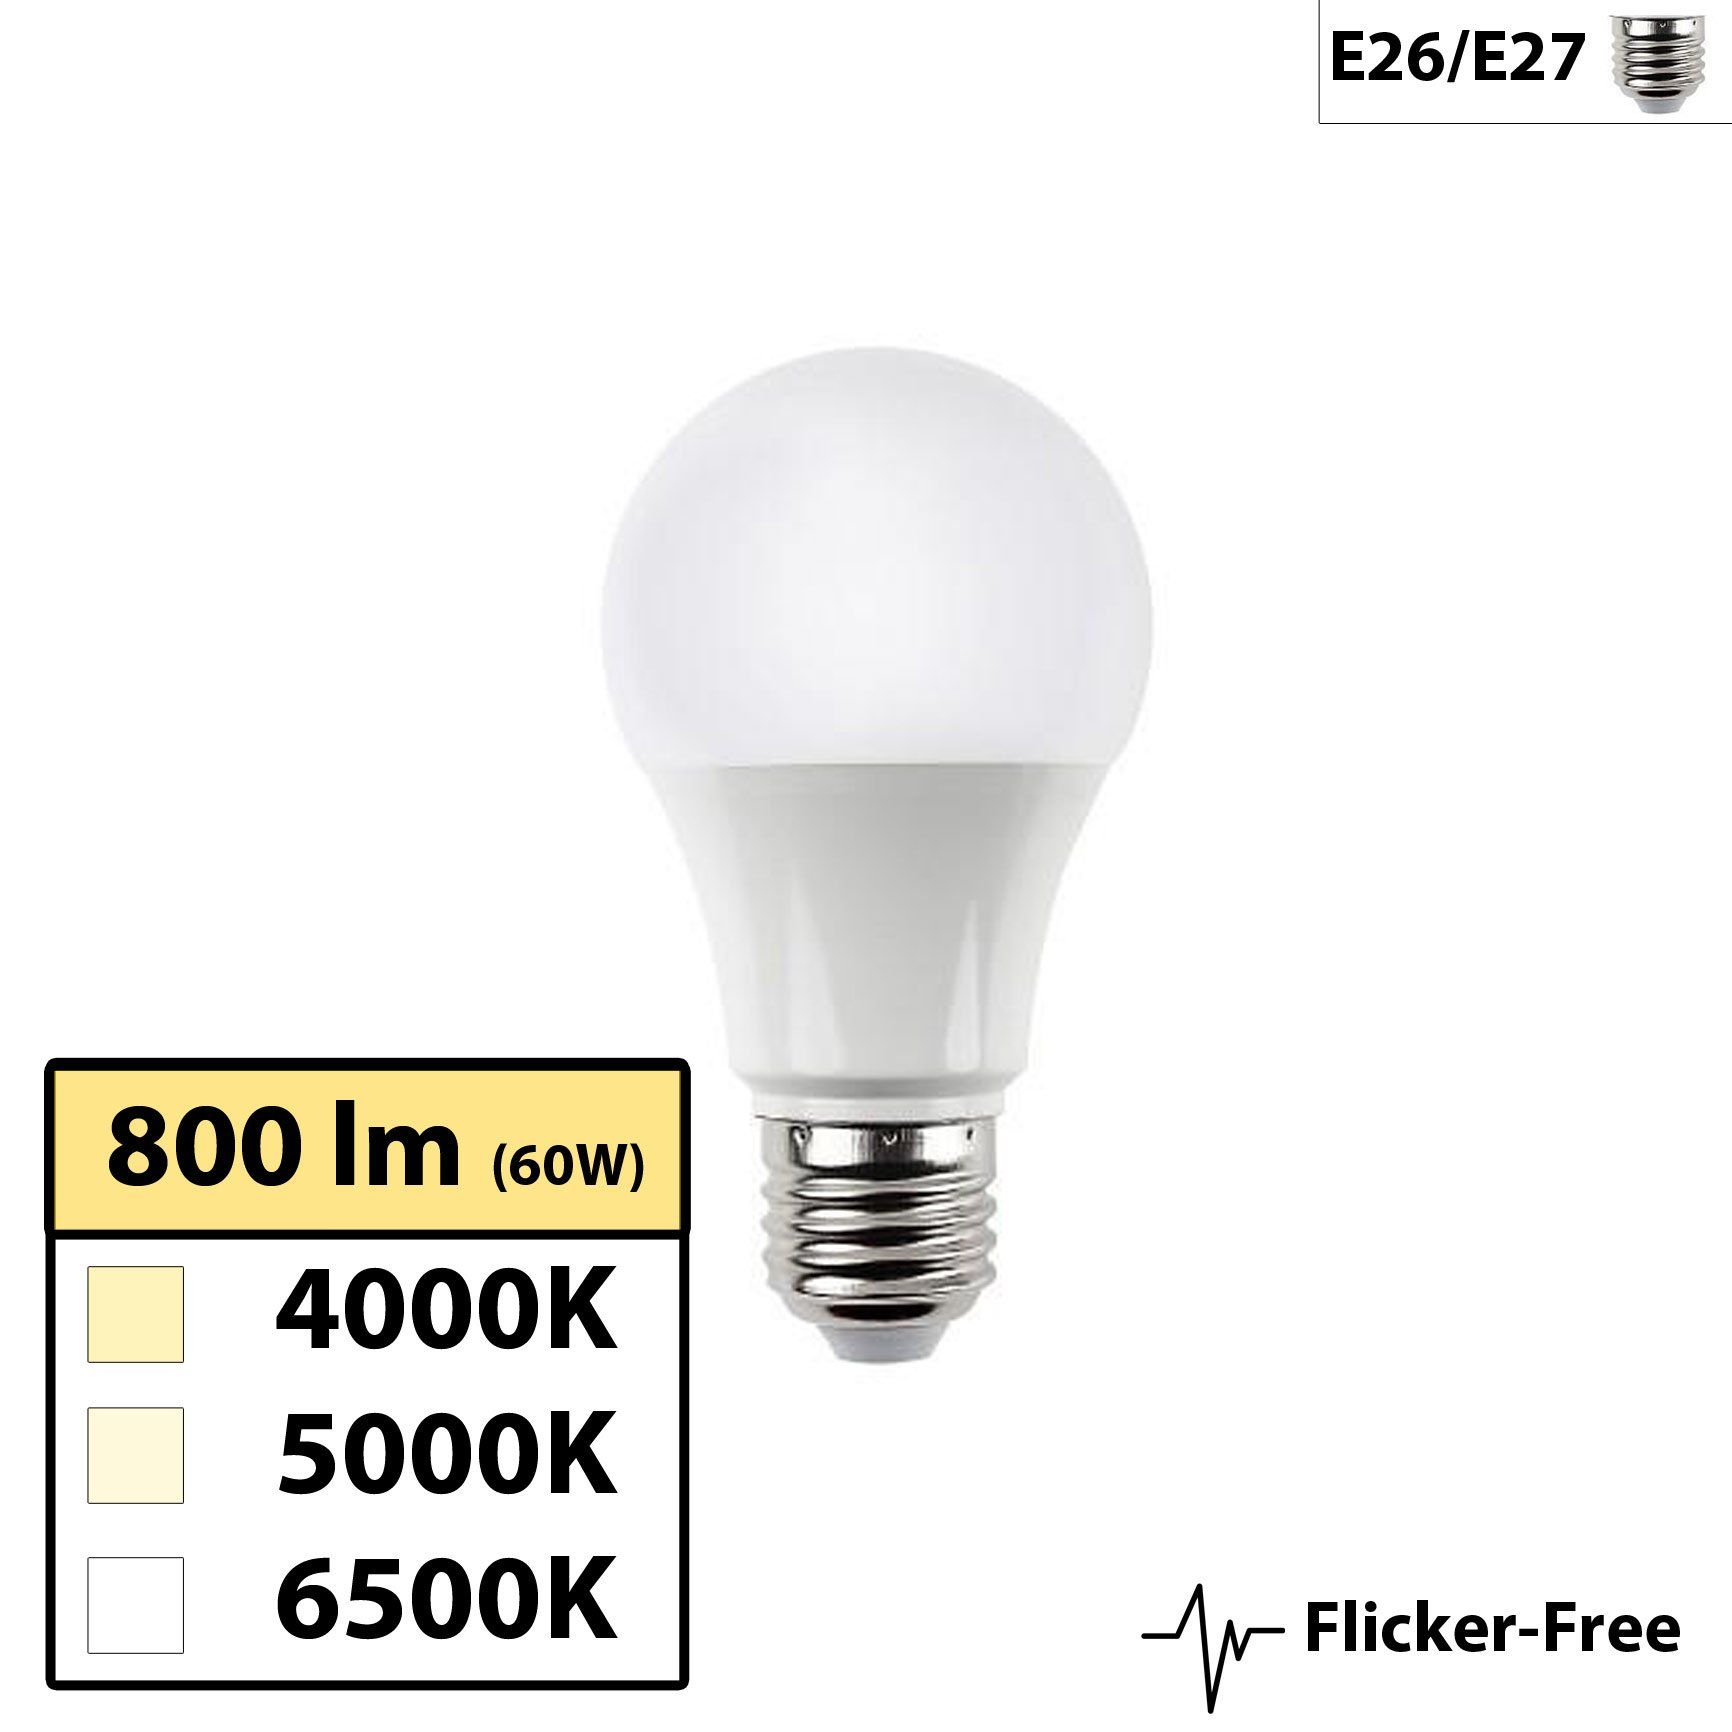 Centric Daylight Full Spectrum Flicker Free A19 10w Led Bulb